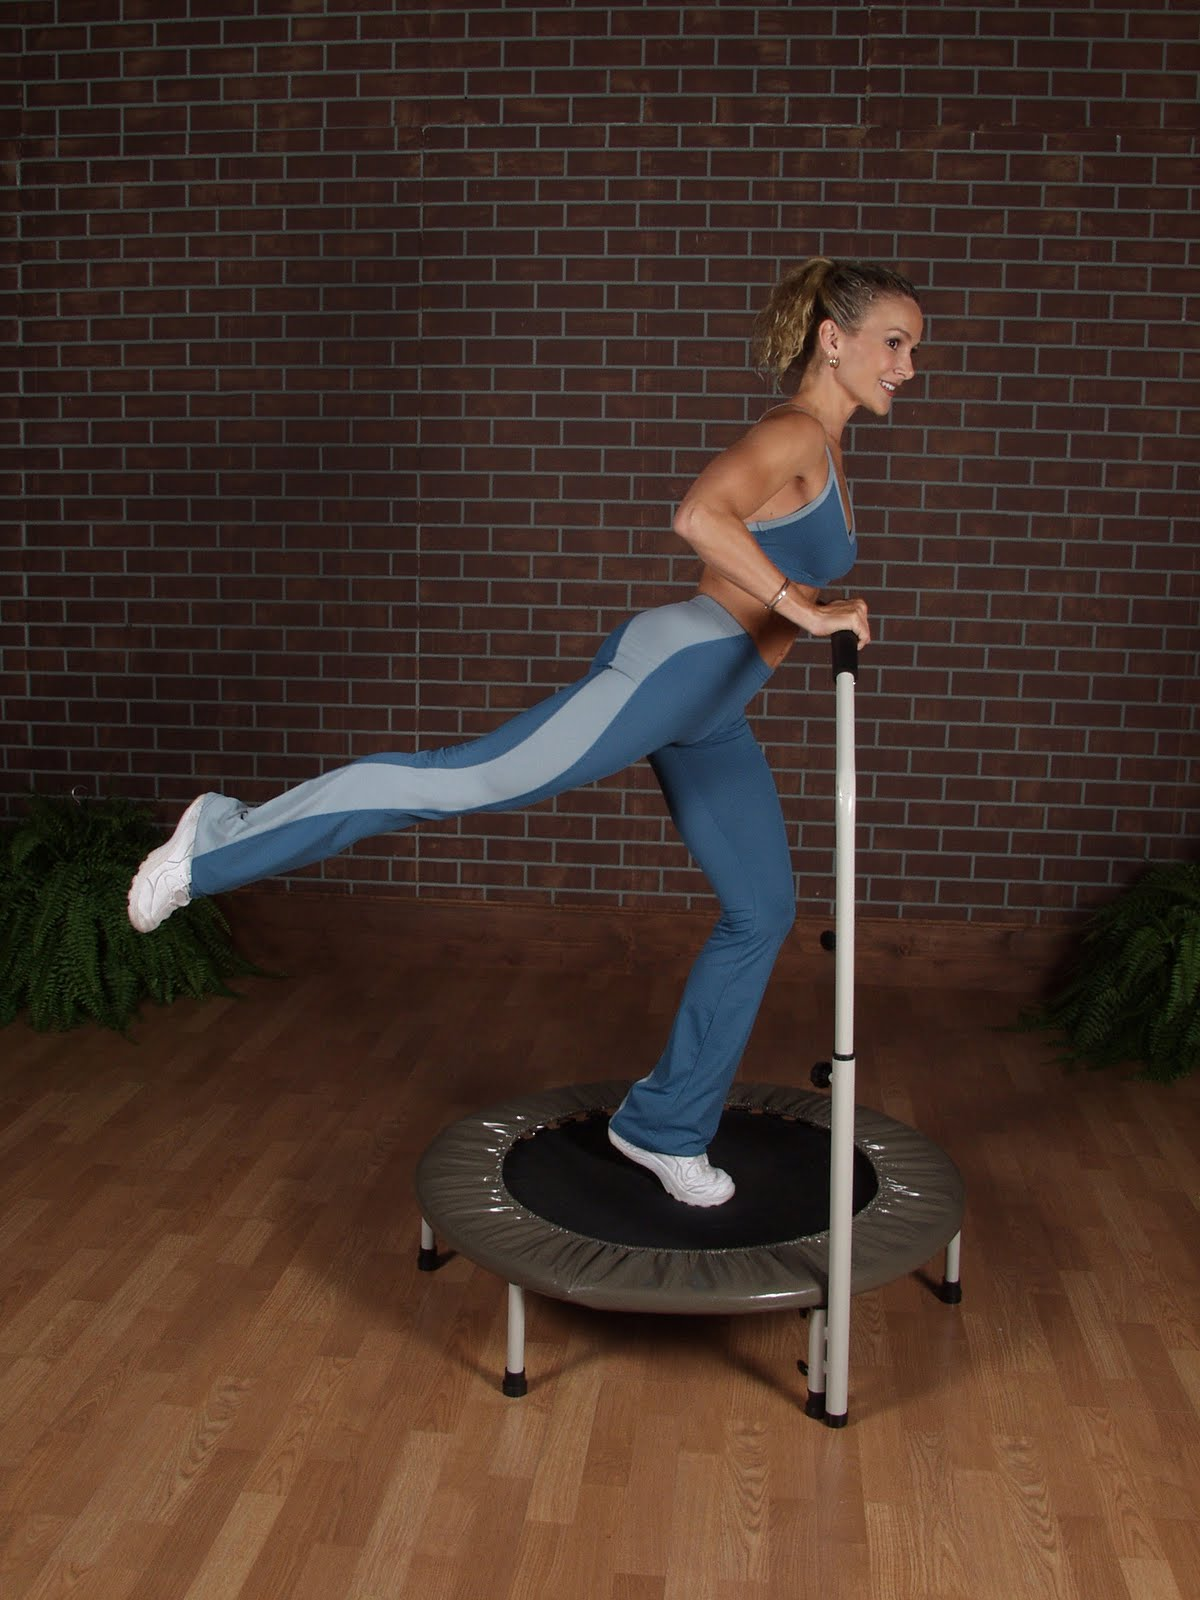 Commit To Be Fit Trampoline As A Fitness Tool You Better Glitter Wallpaper Creepypasta Choose from Our Pictures  Collections Wallpapers [x-site.ml]